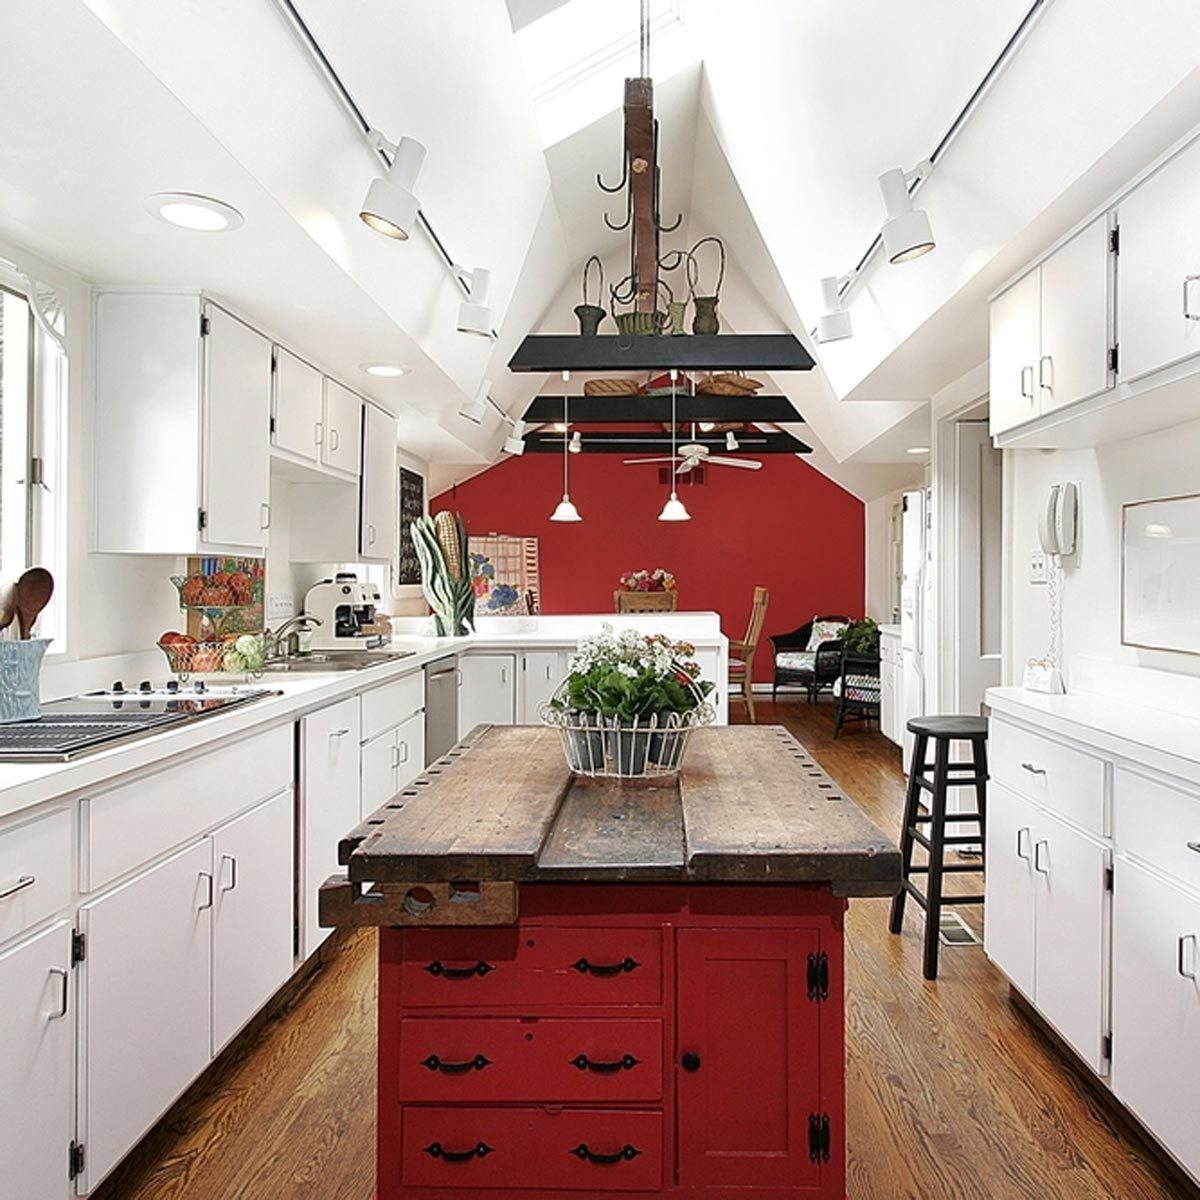 Inspiring Country Kitchen Paint Colors To Get Inspirations: 12 Inspiring Kitchen Island Ideas